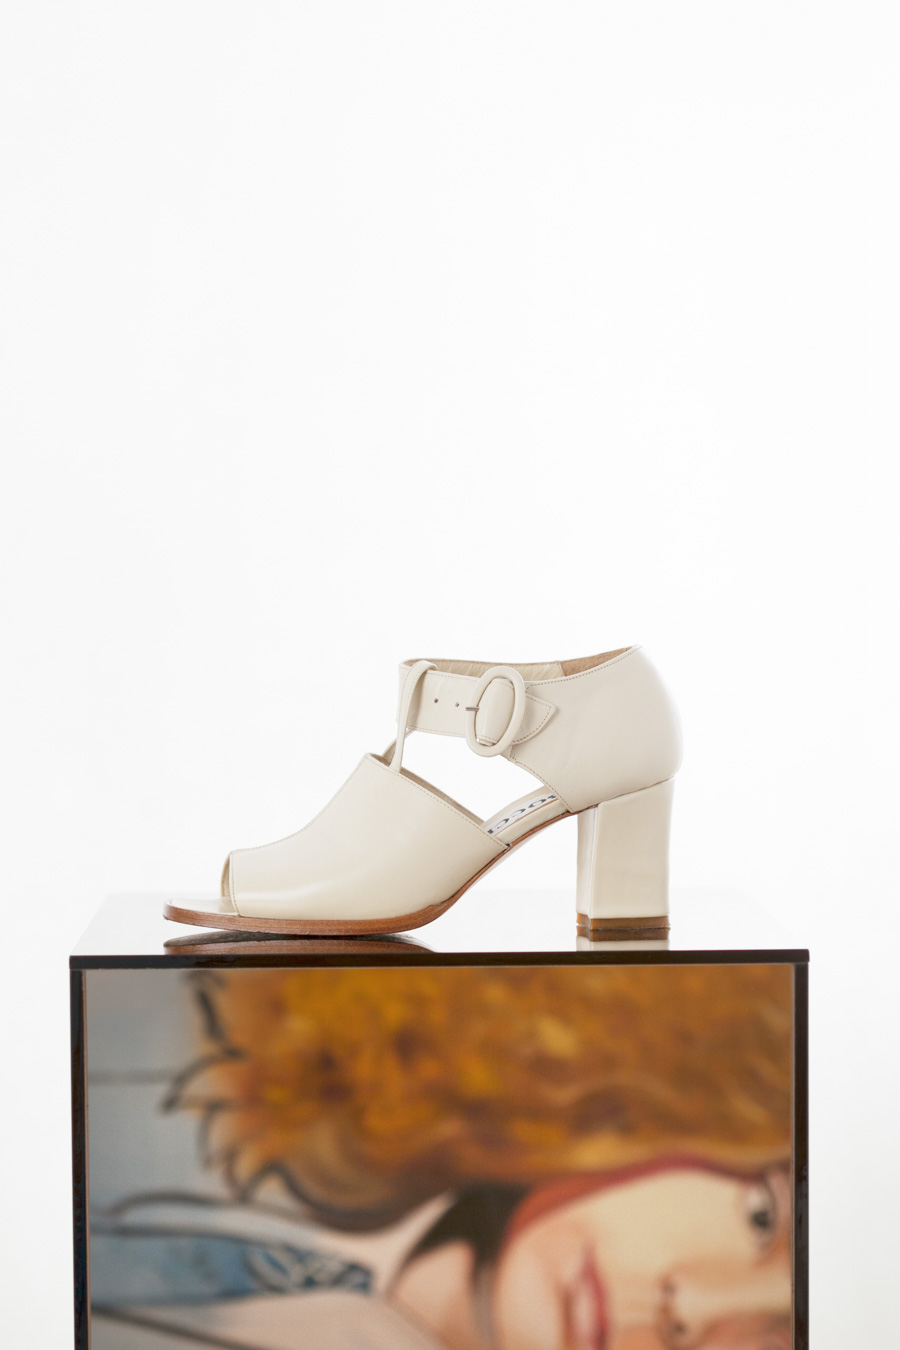 Toronto_Still_Life_Photographer_Joanna_Wojewoda_Second_Cousin_Vintage_Shoes-1.jpg